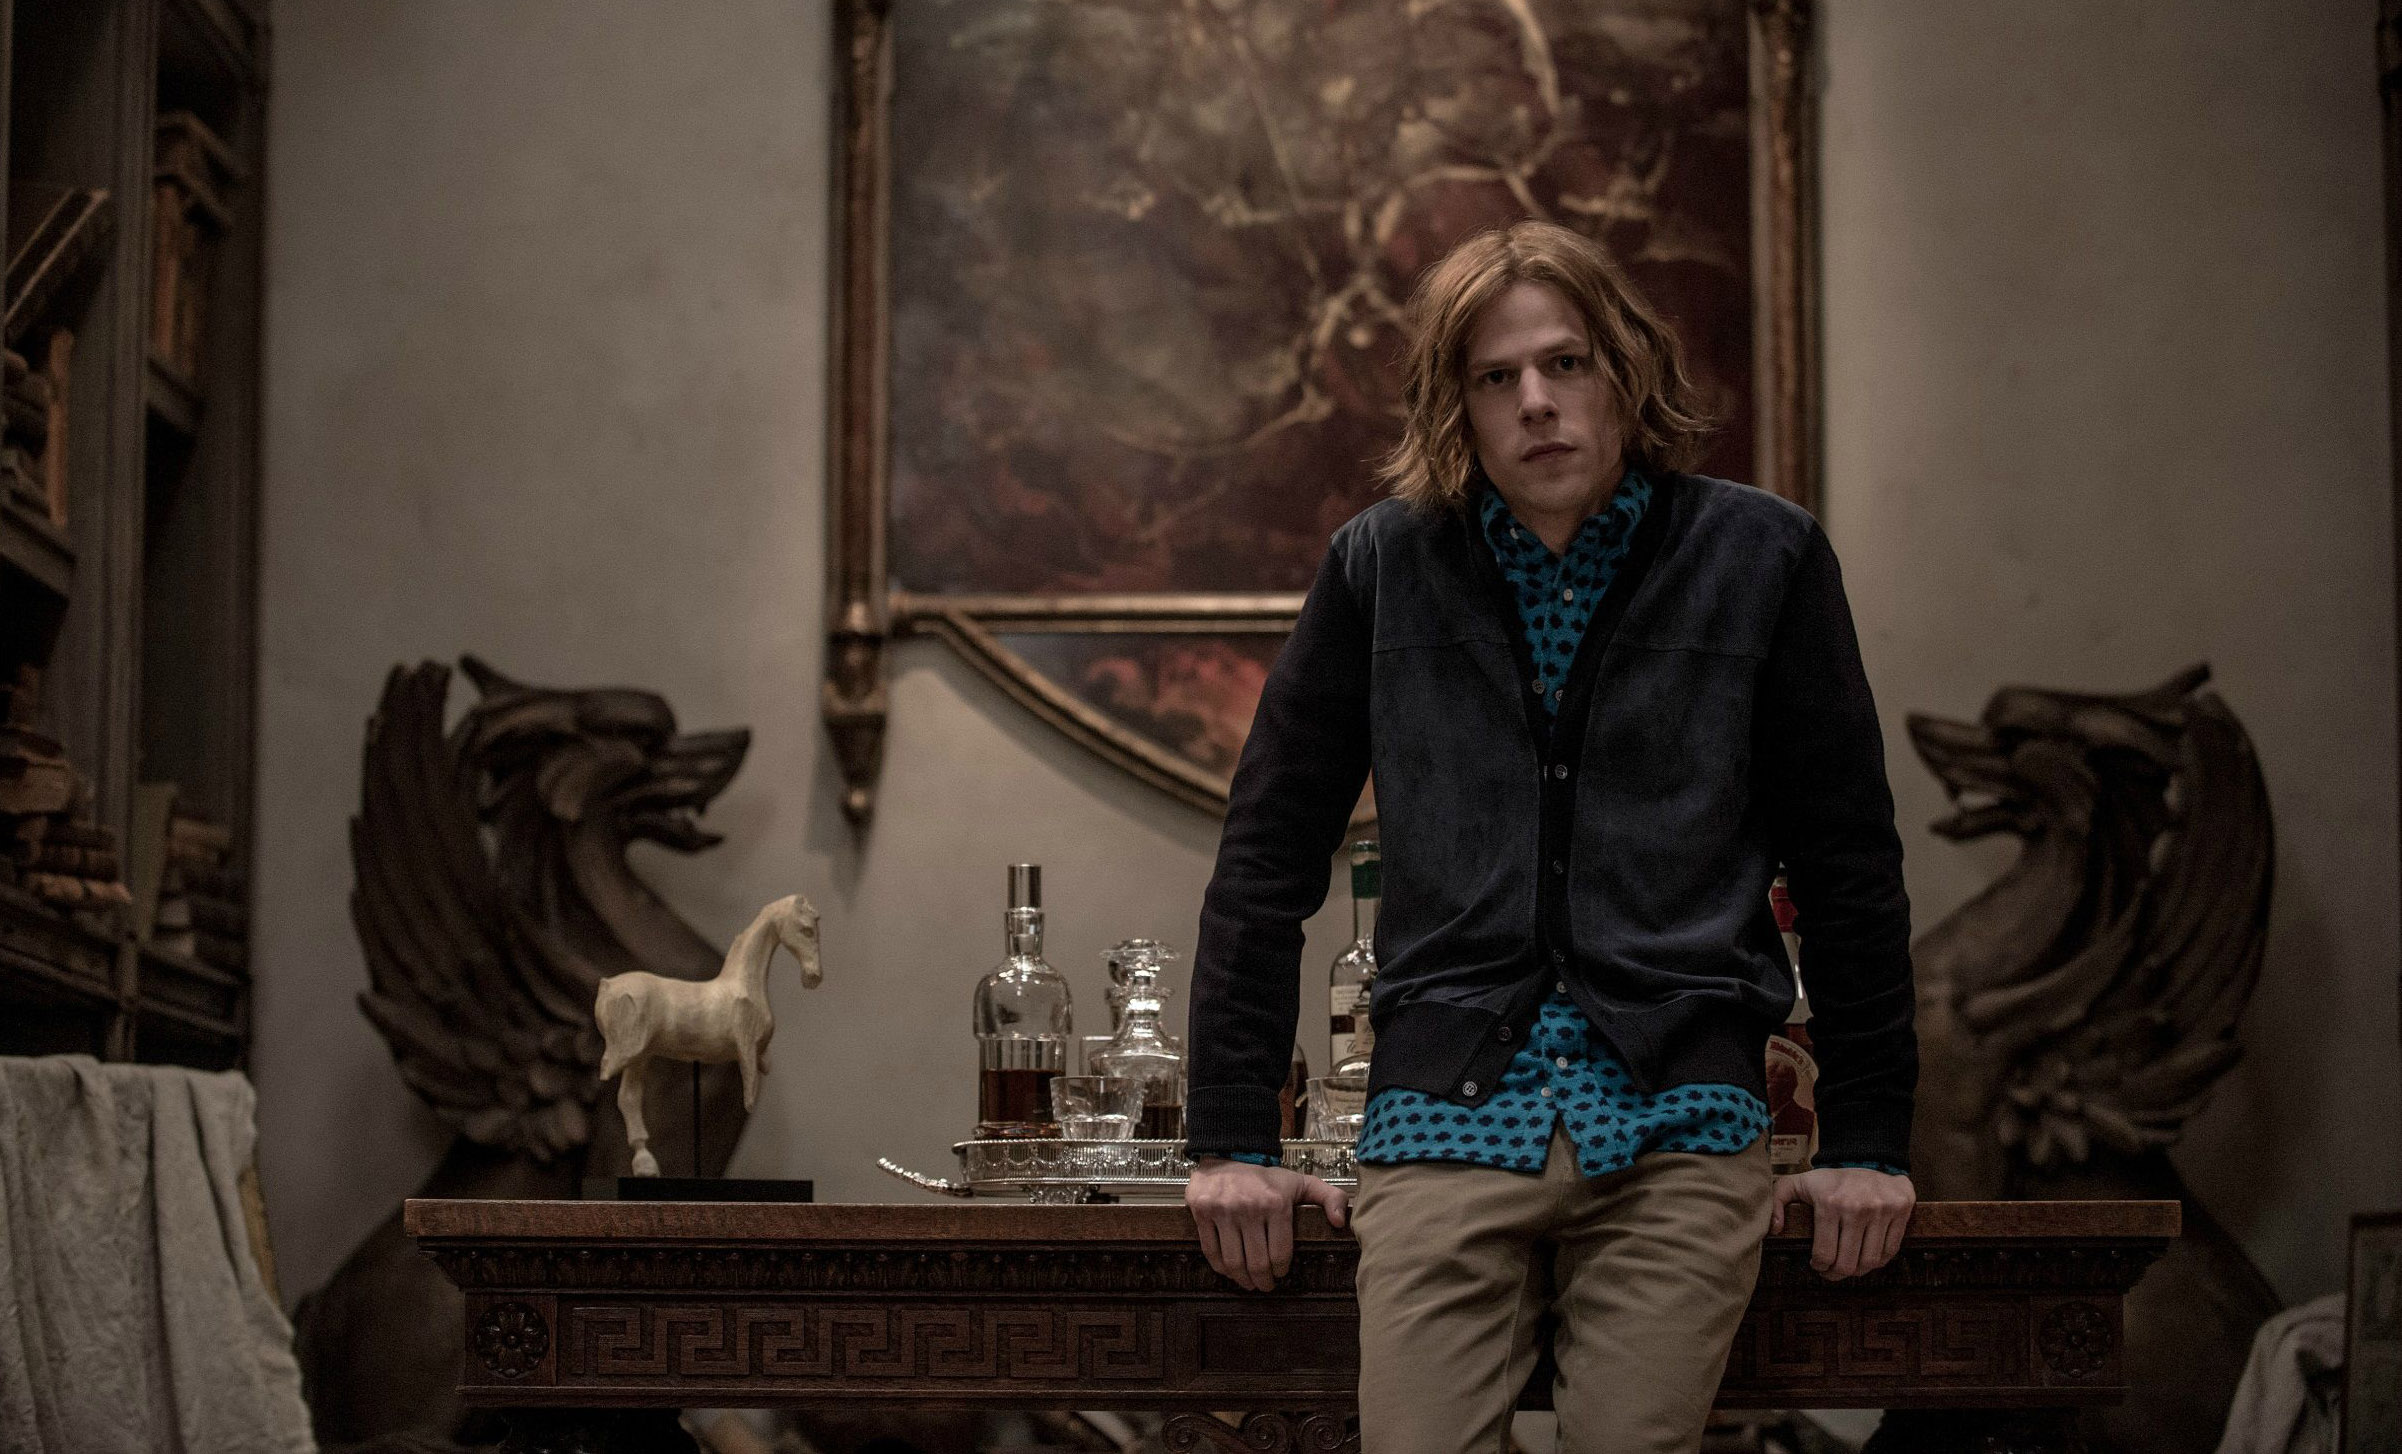 Jesse Eisenberg overstays his welcome as a poorly rendered version of Lex Luthor.